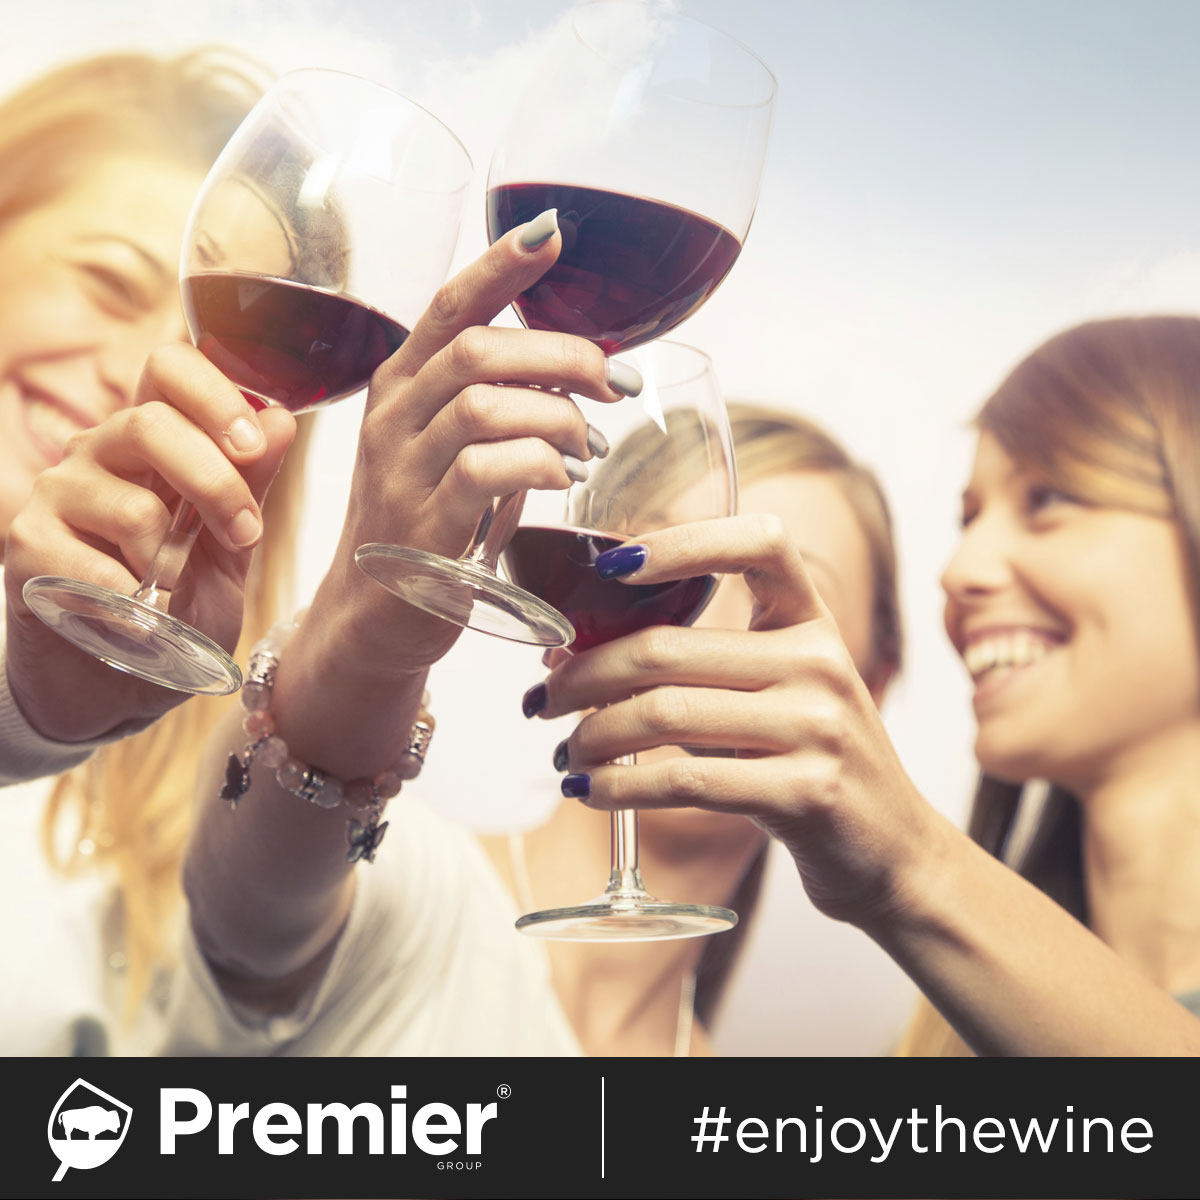 The Premier Group: #enjoythewine